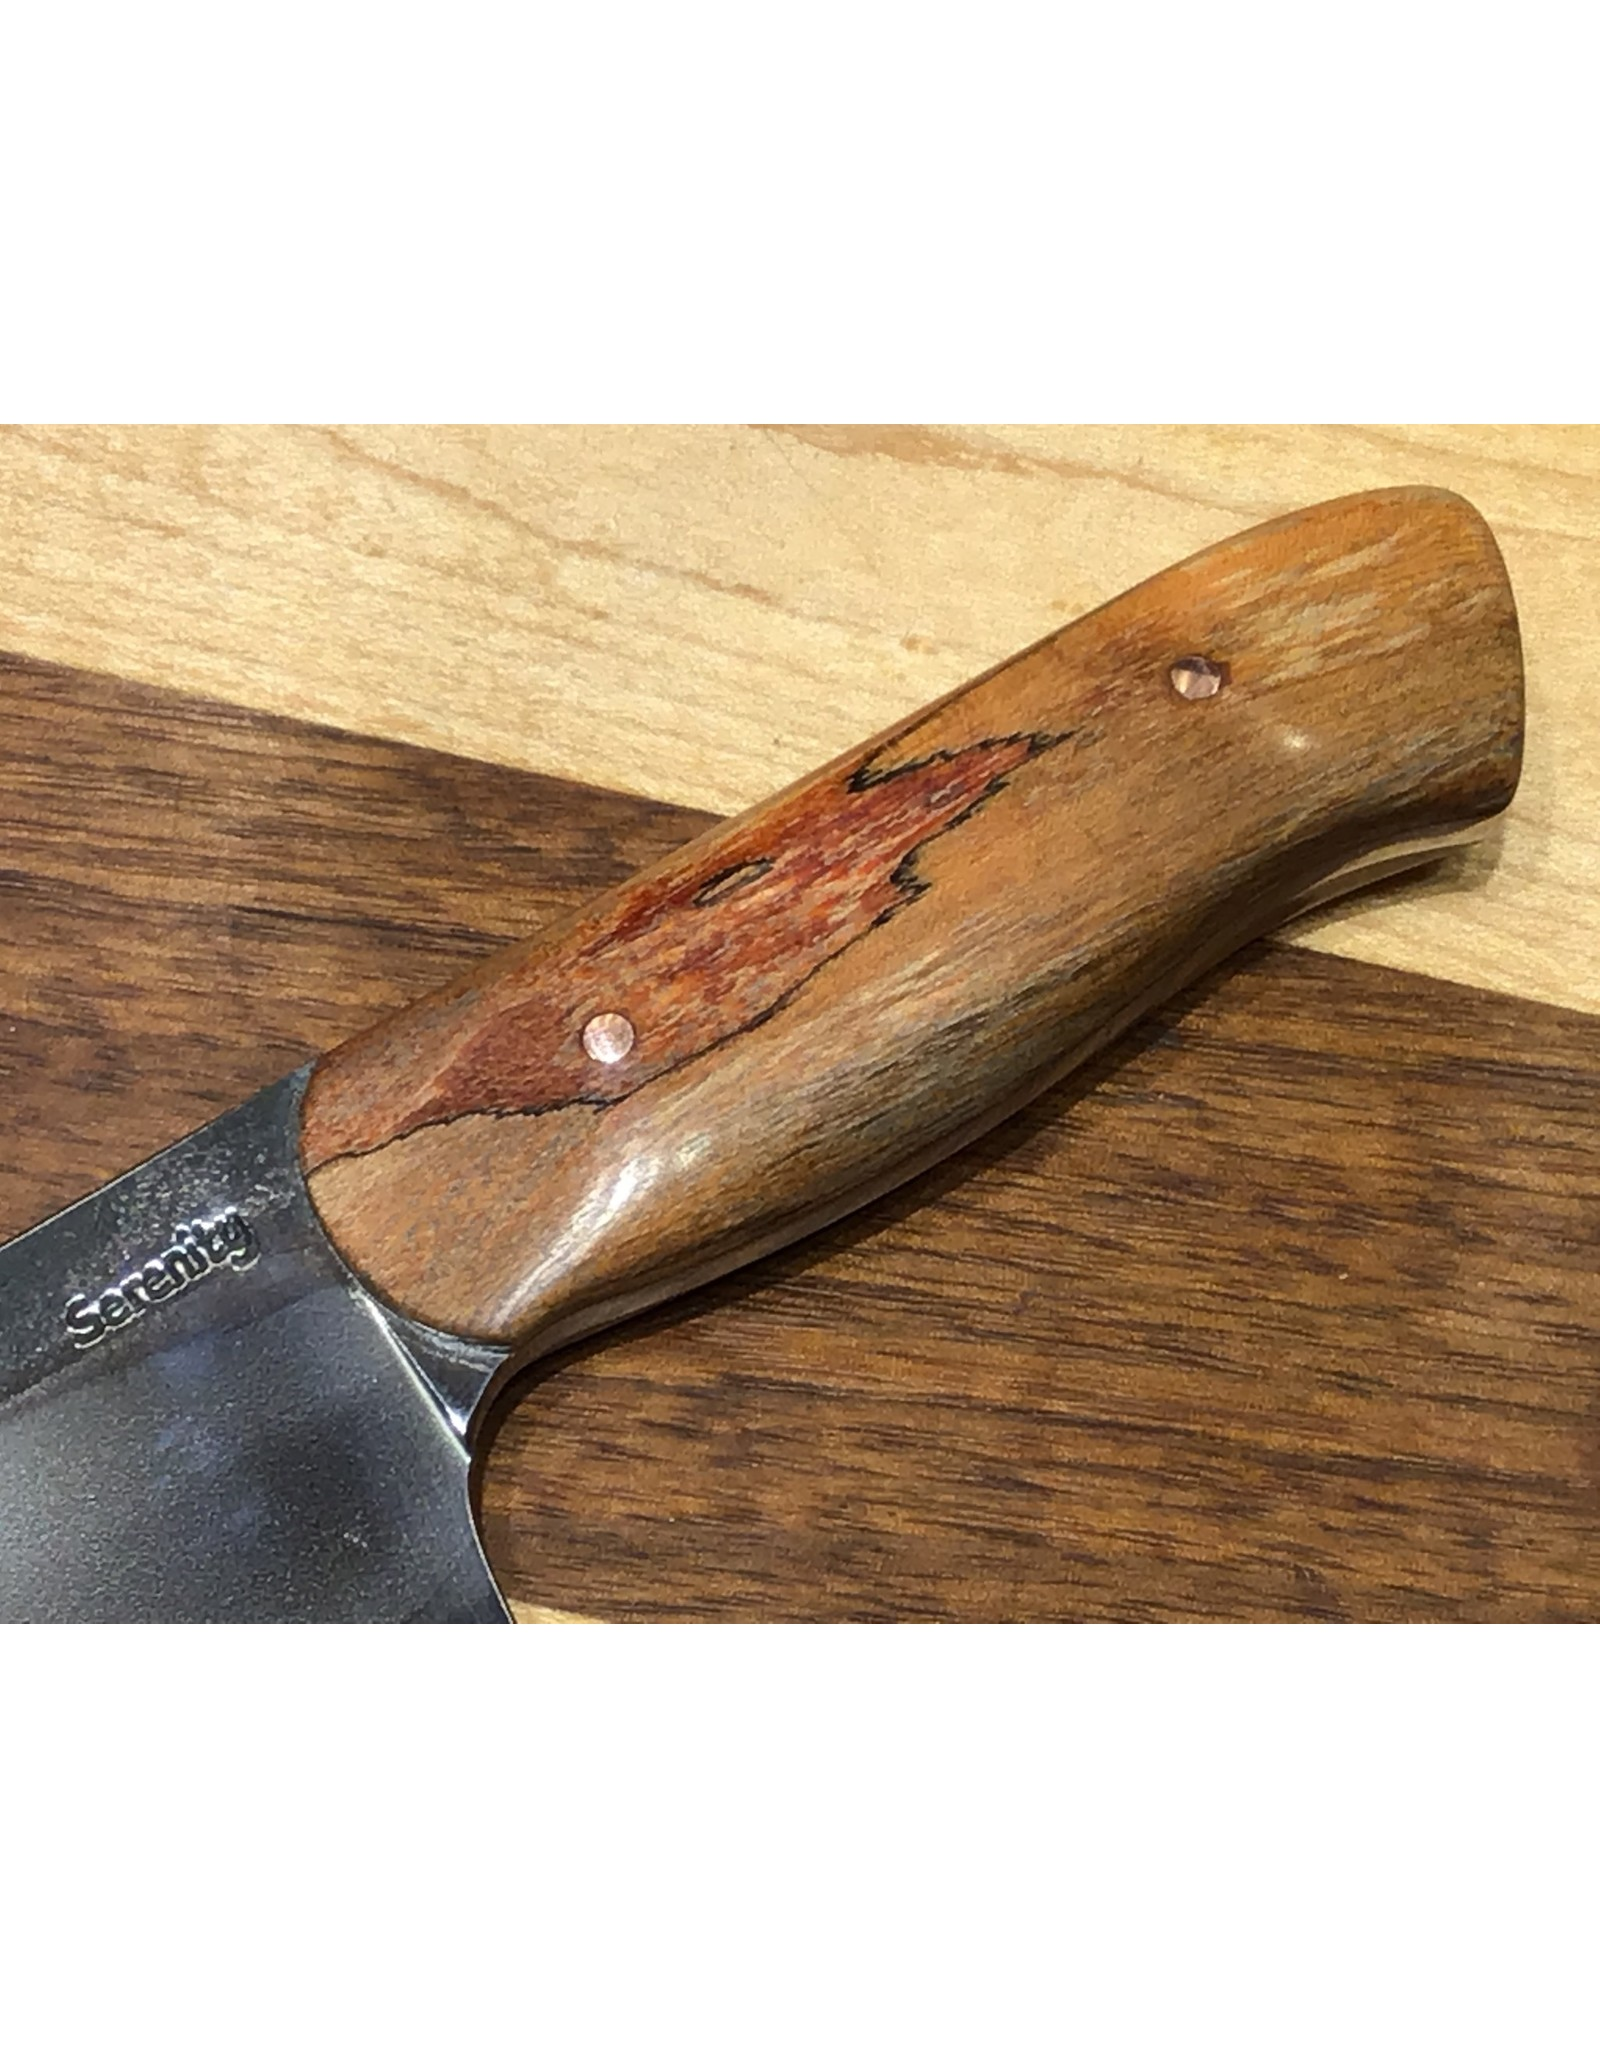 Serenity Mini Santoku - Thick Spine - CPM154 with Red Spalted Sugar Maple